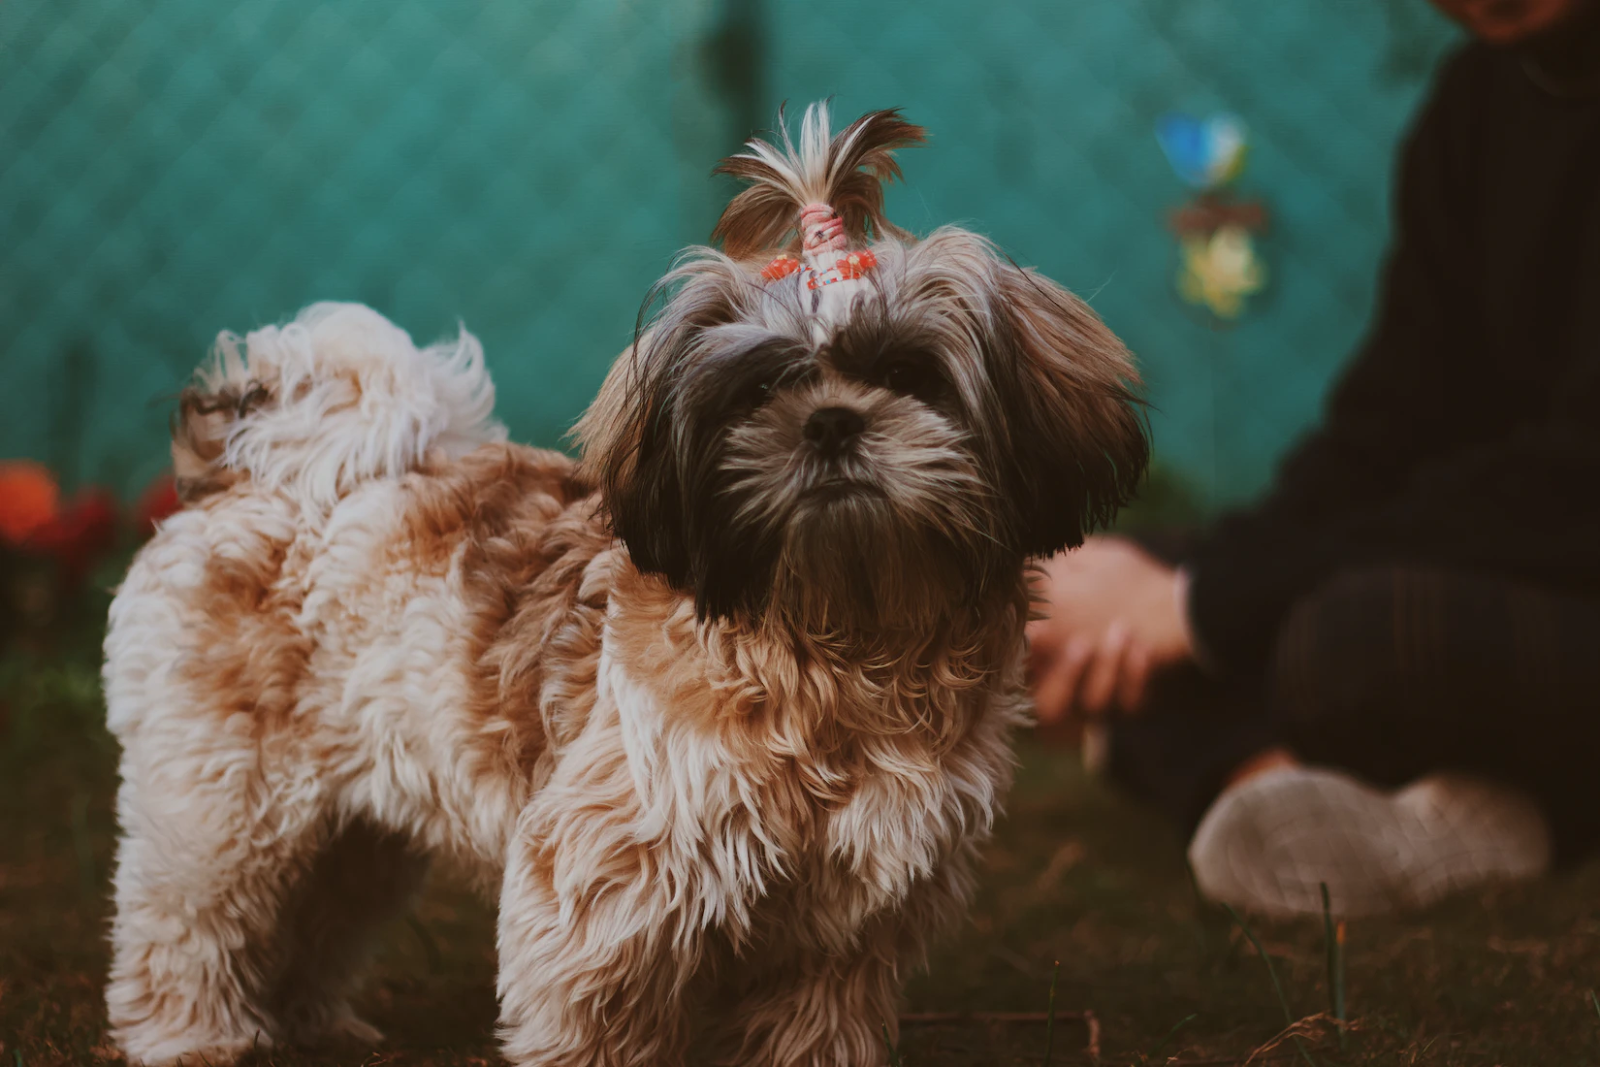 Shih Tzu looking at camera while wearing a ponytail | Royal dogs